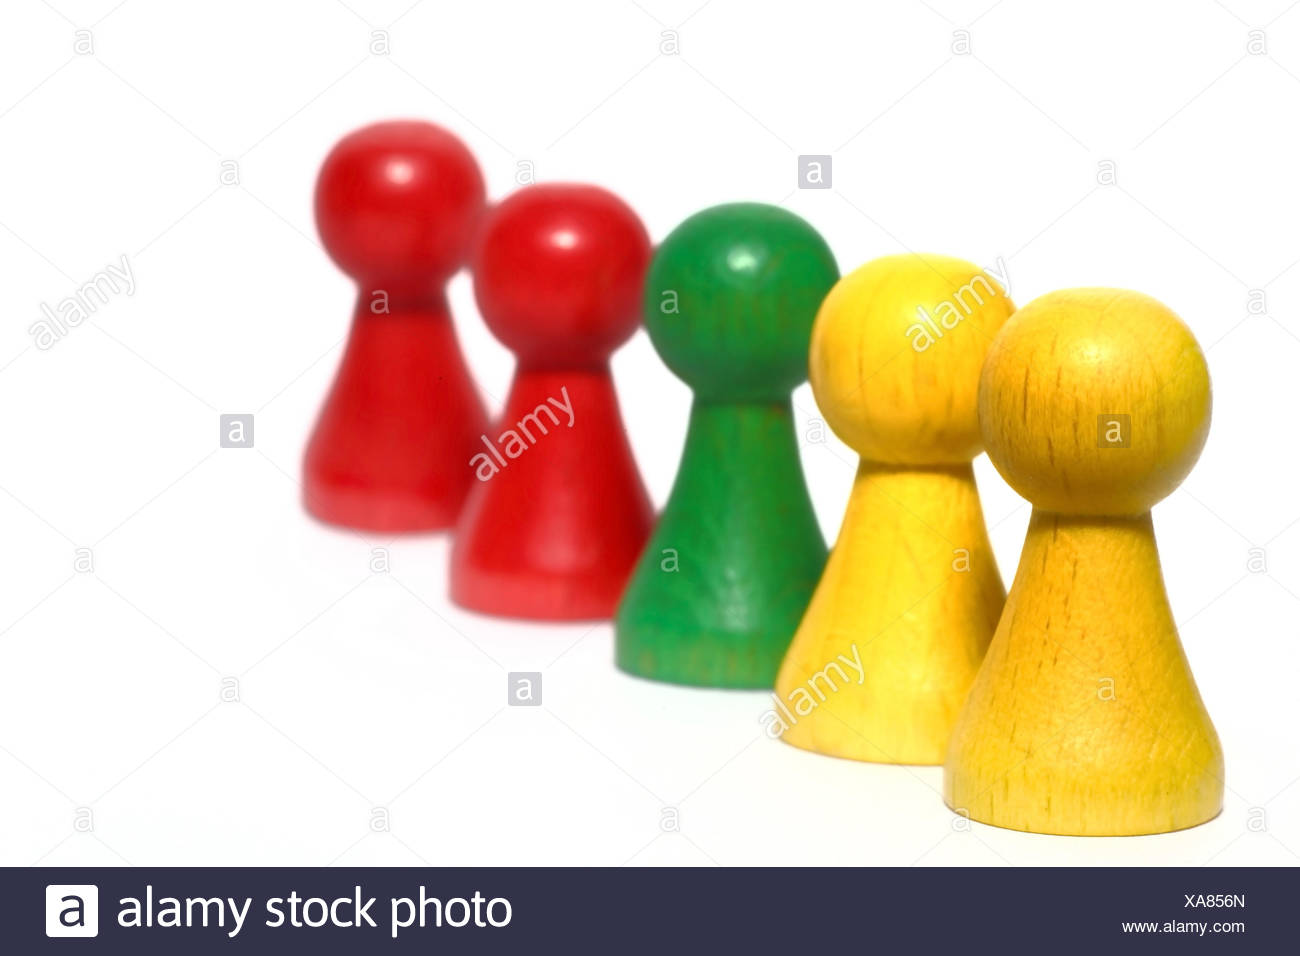 game characters - Stock Image